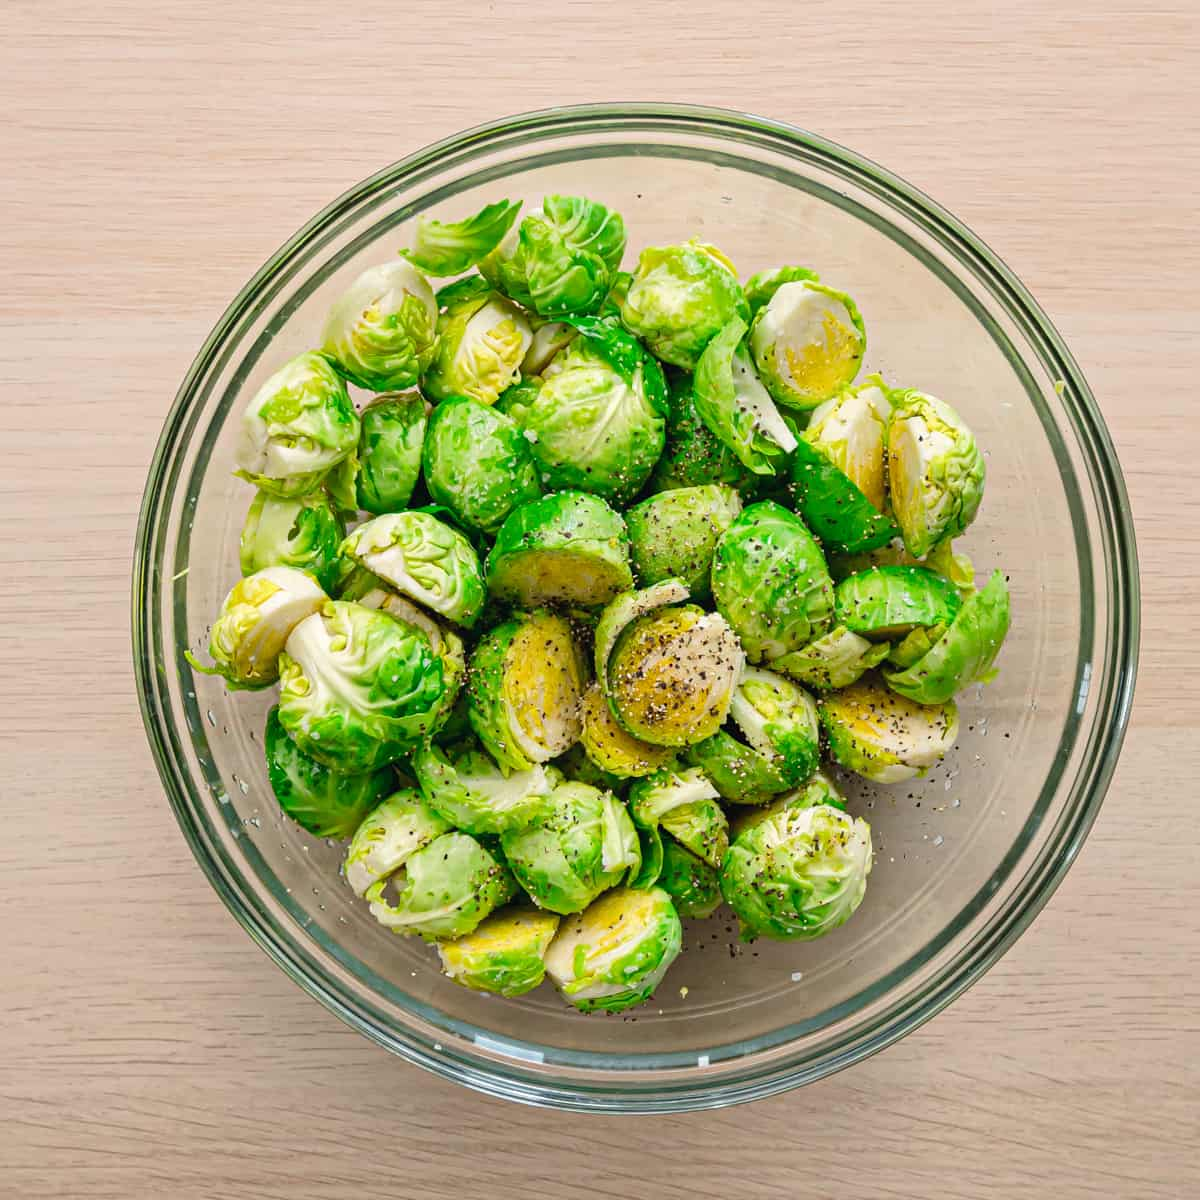 A bowl full of brussels sprouts with kosher salt and black pepper